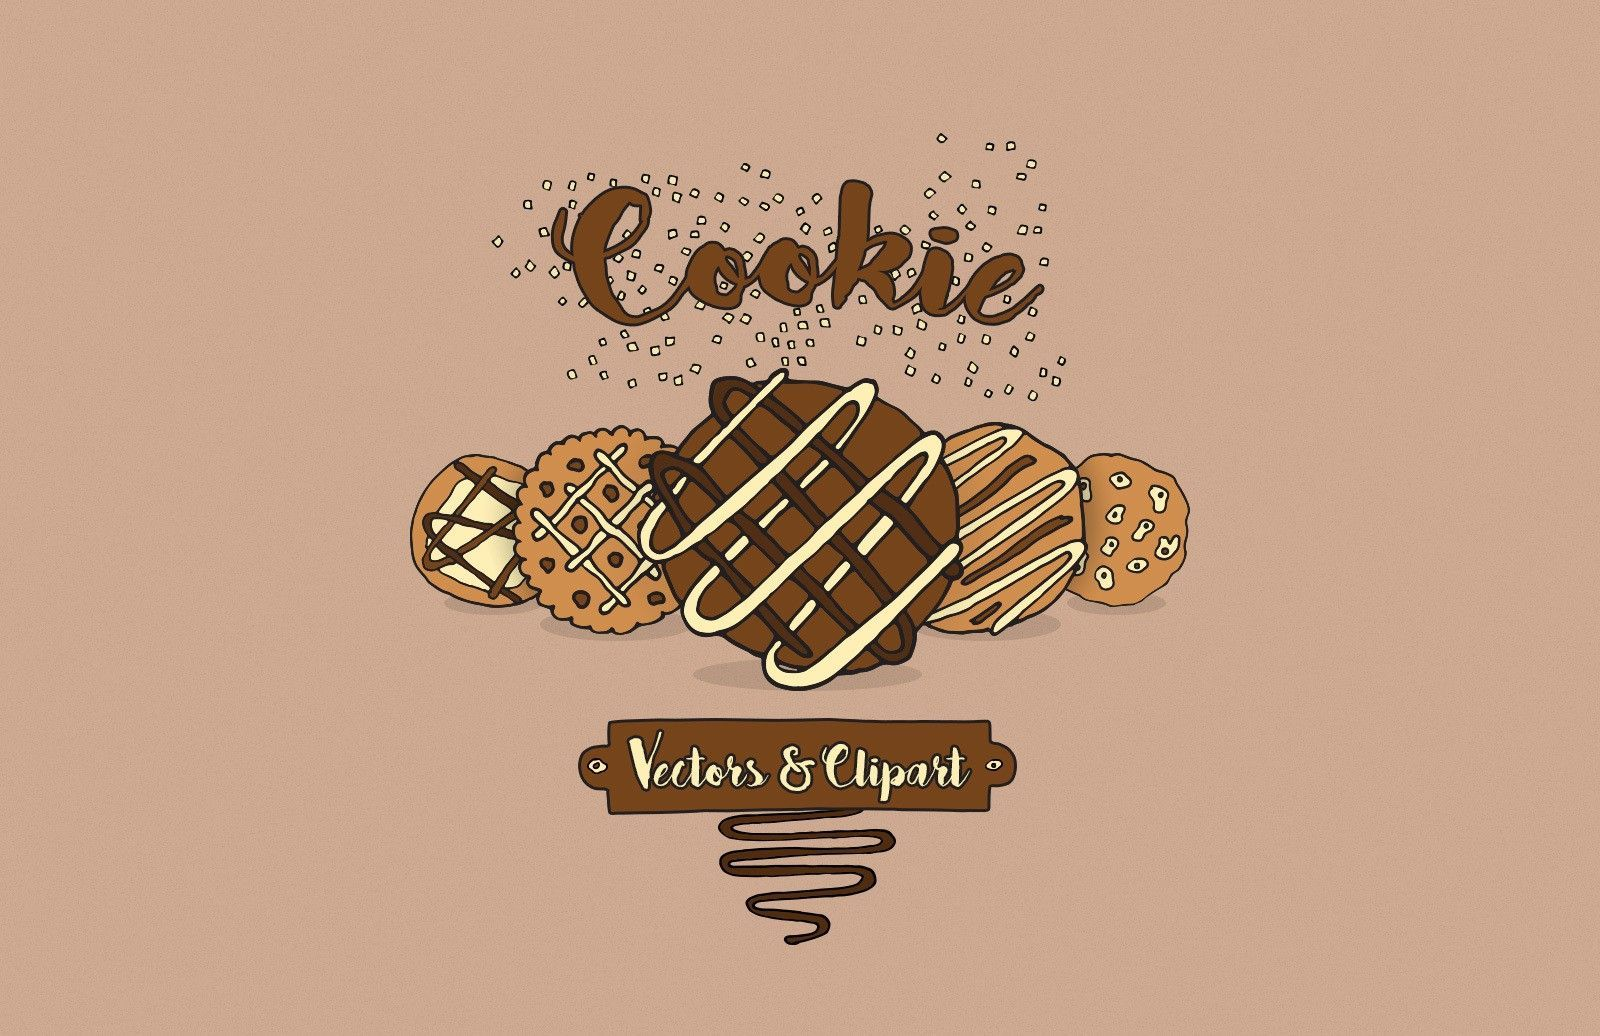 cookie vectors clipart bakery logo bakery logo design cookie vector cookie vectors clipart bakery logo